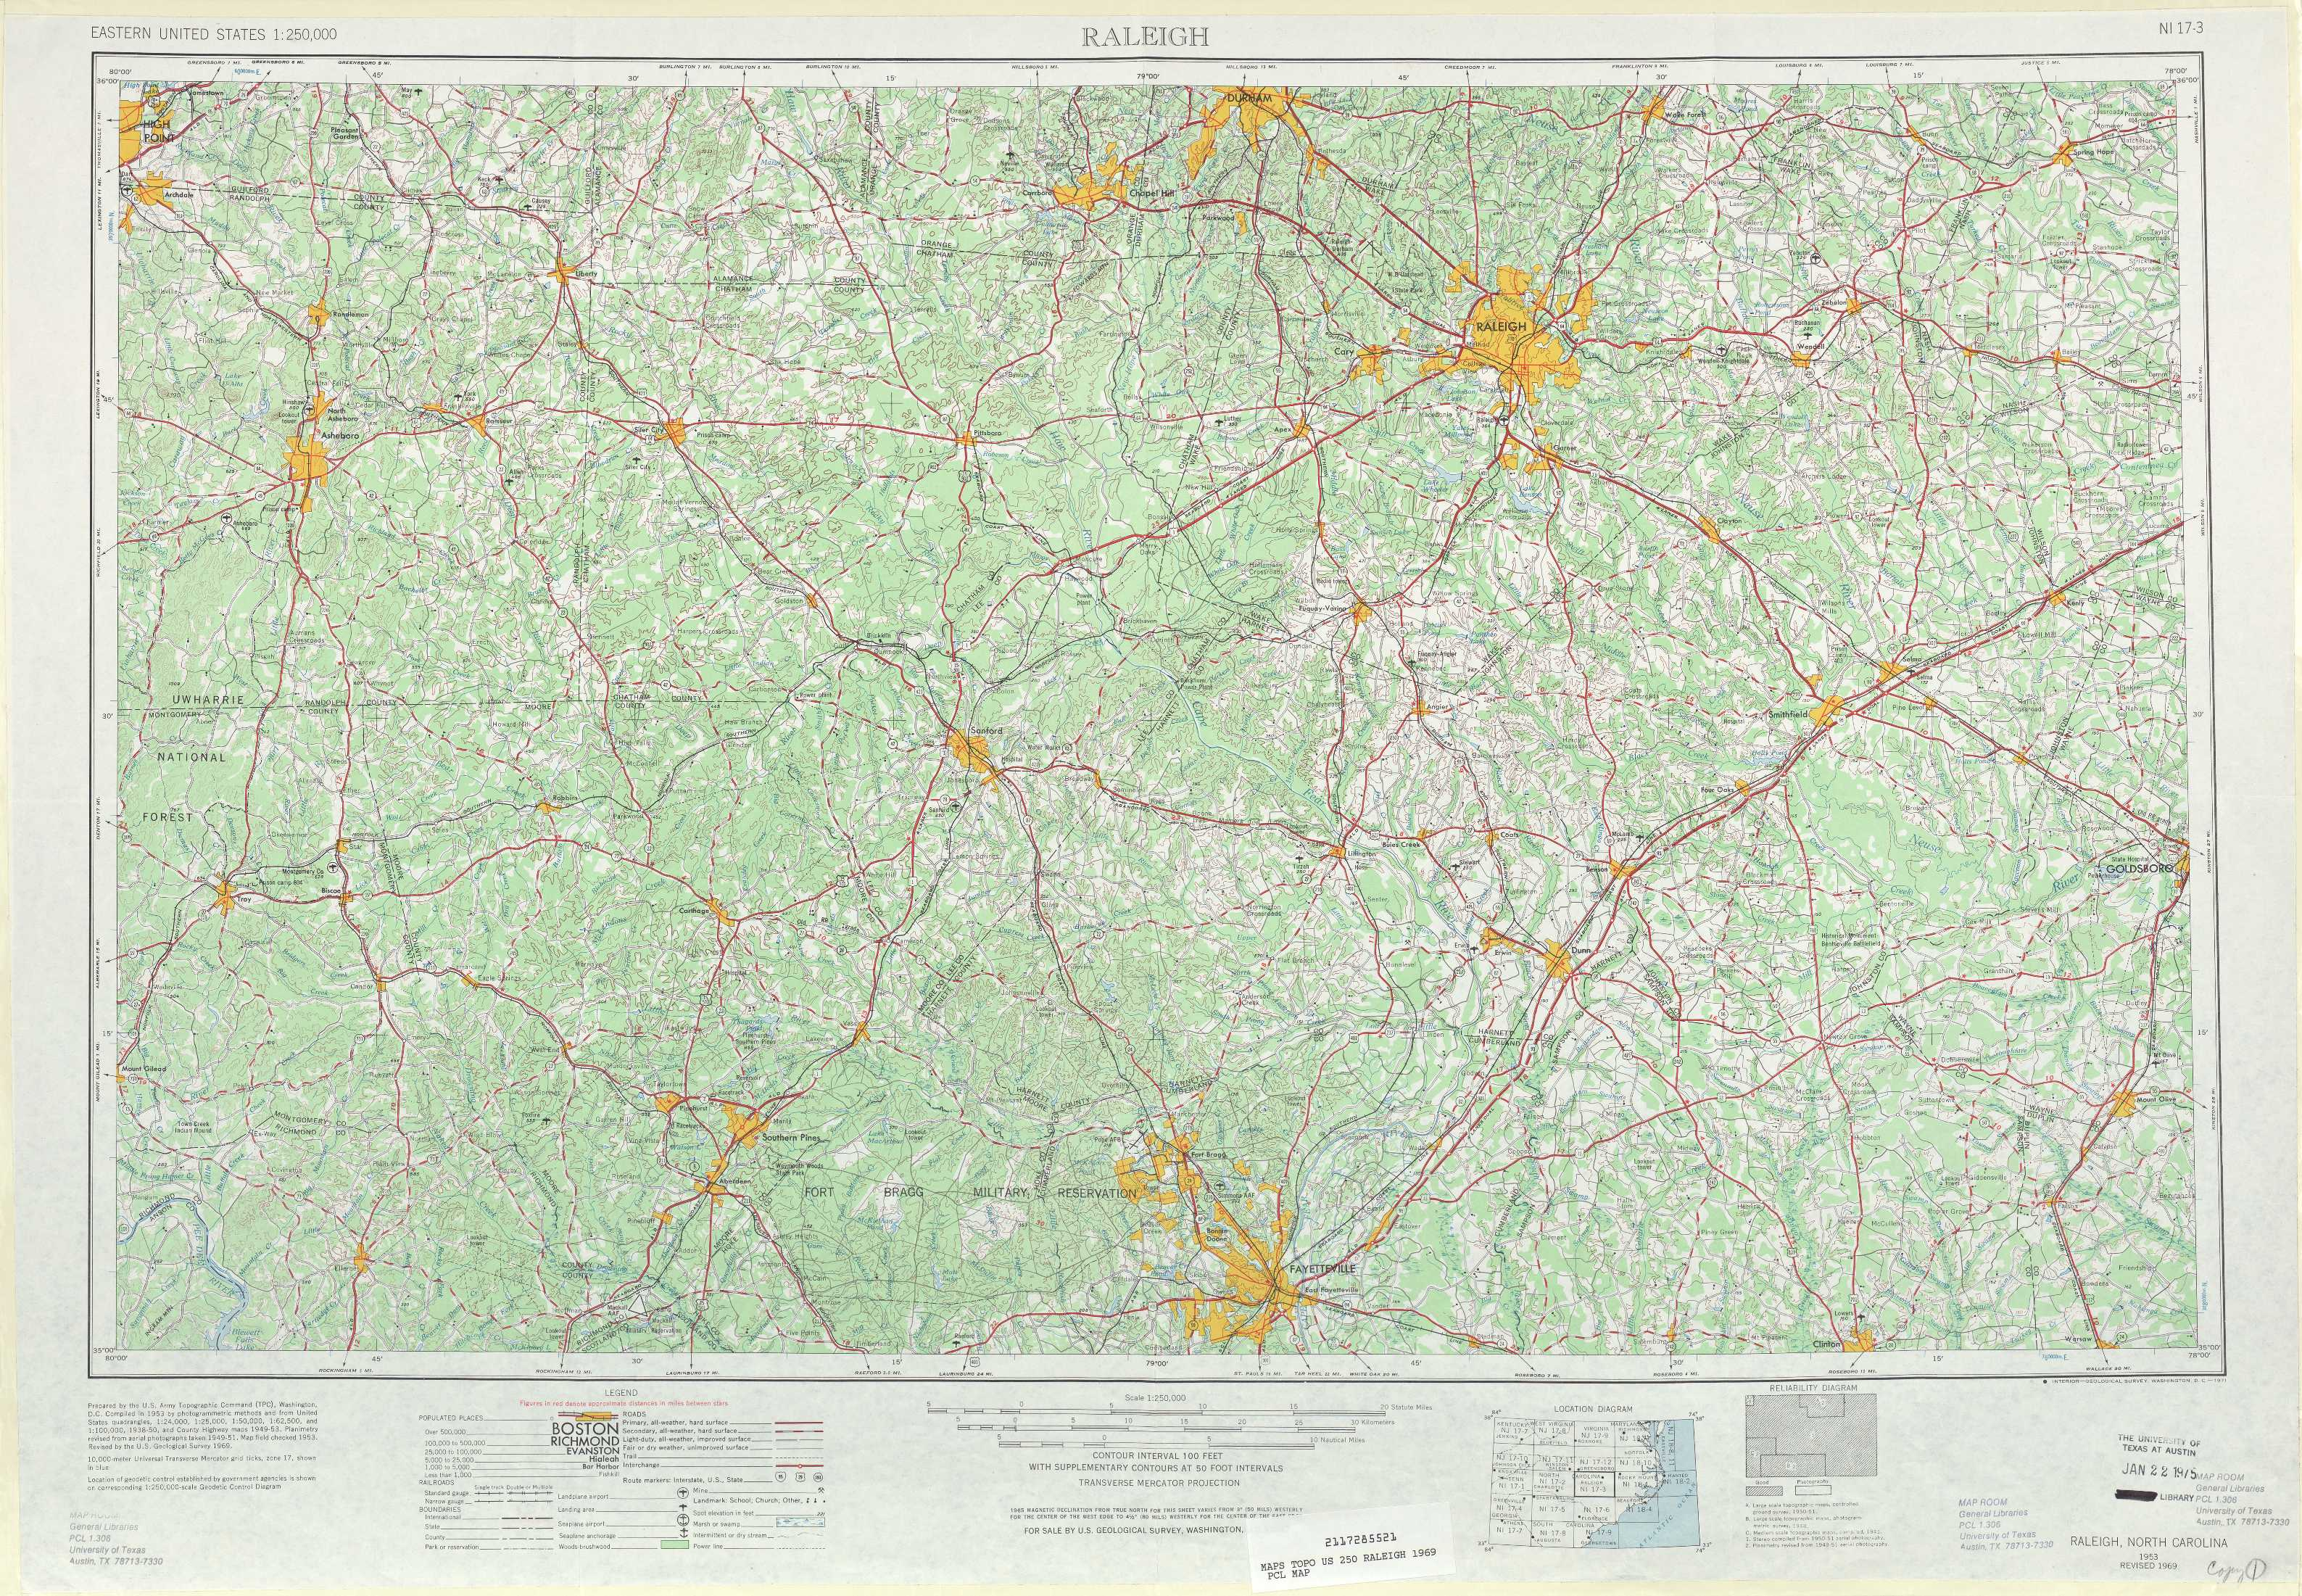 Raleigh topographic maps, NC   USGS Topo Quad 35078a1 at 1:250,000